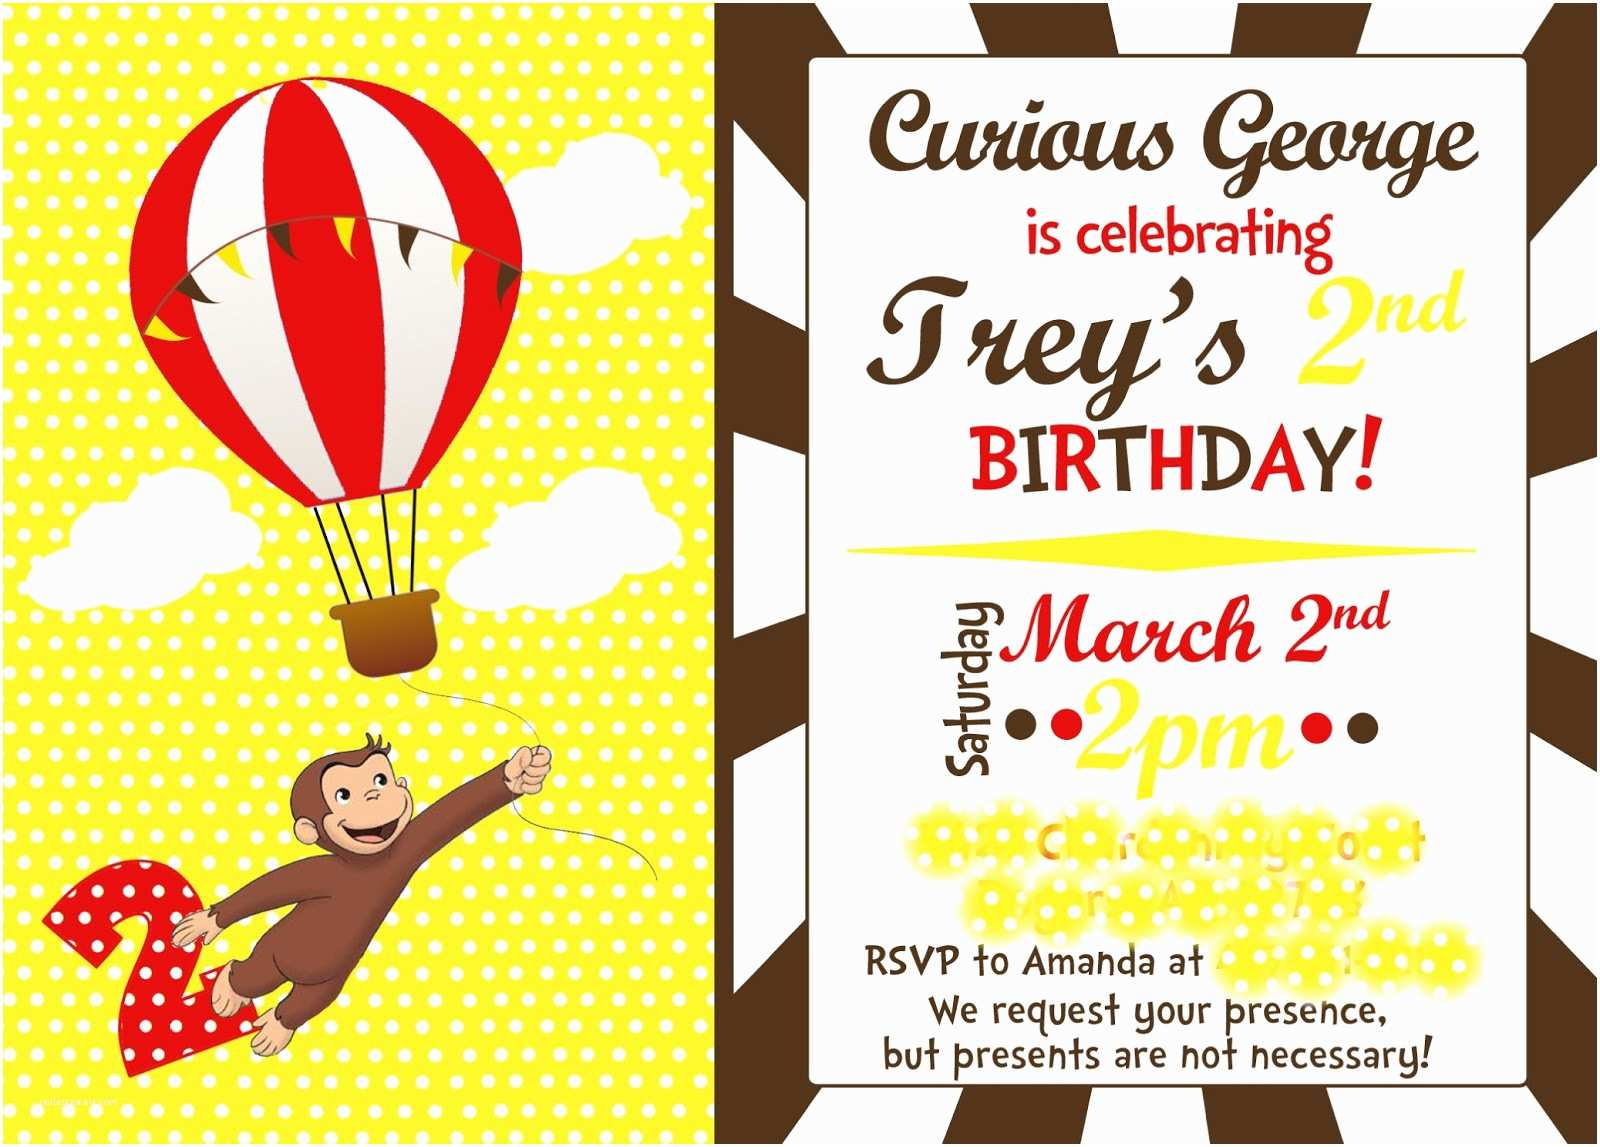 Curious George Birthday Invitations Amanda S Annotations Trey 2nd